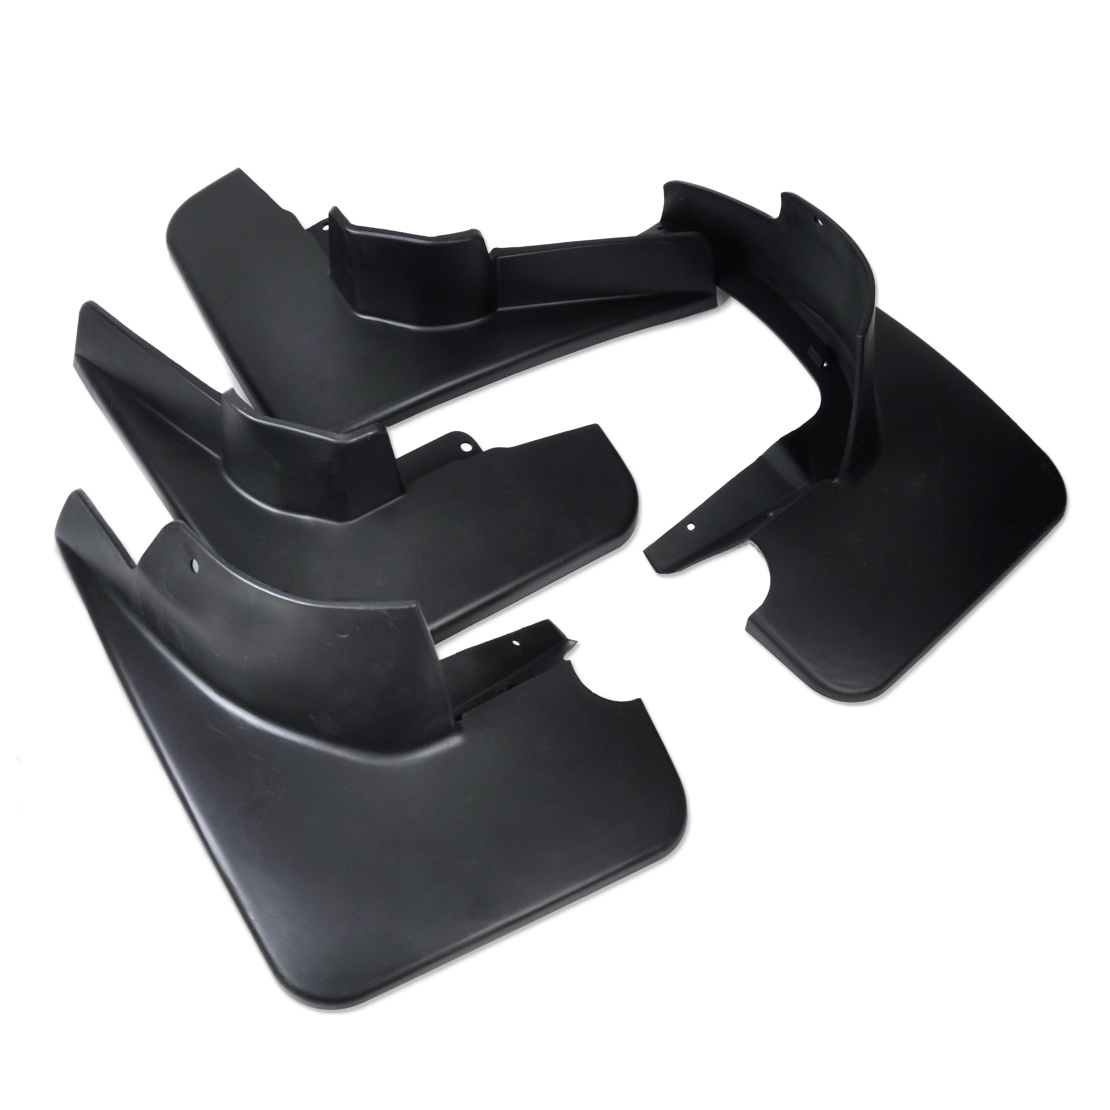 Mud flaps splash guards mudguard for mercedes benz w164 for Mercedes benz ml350 mud flaps